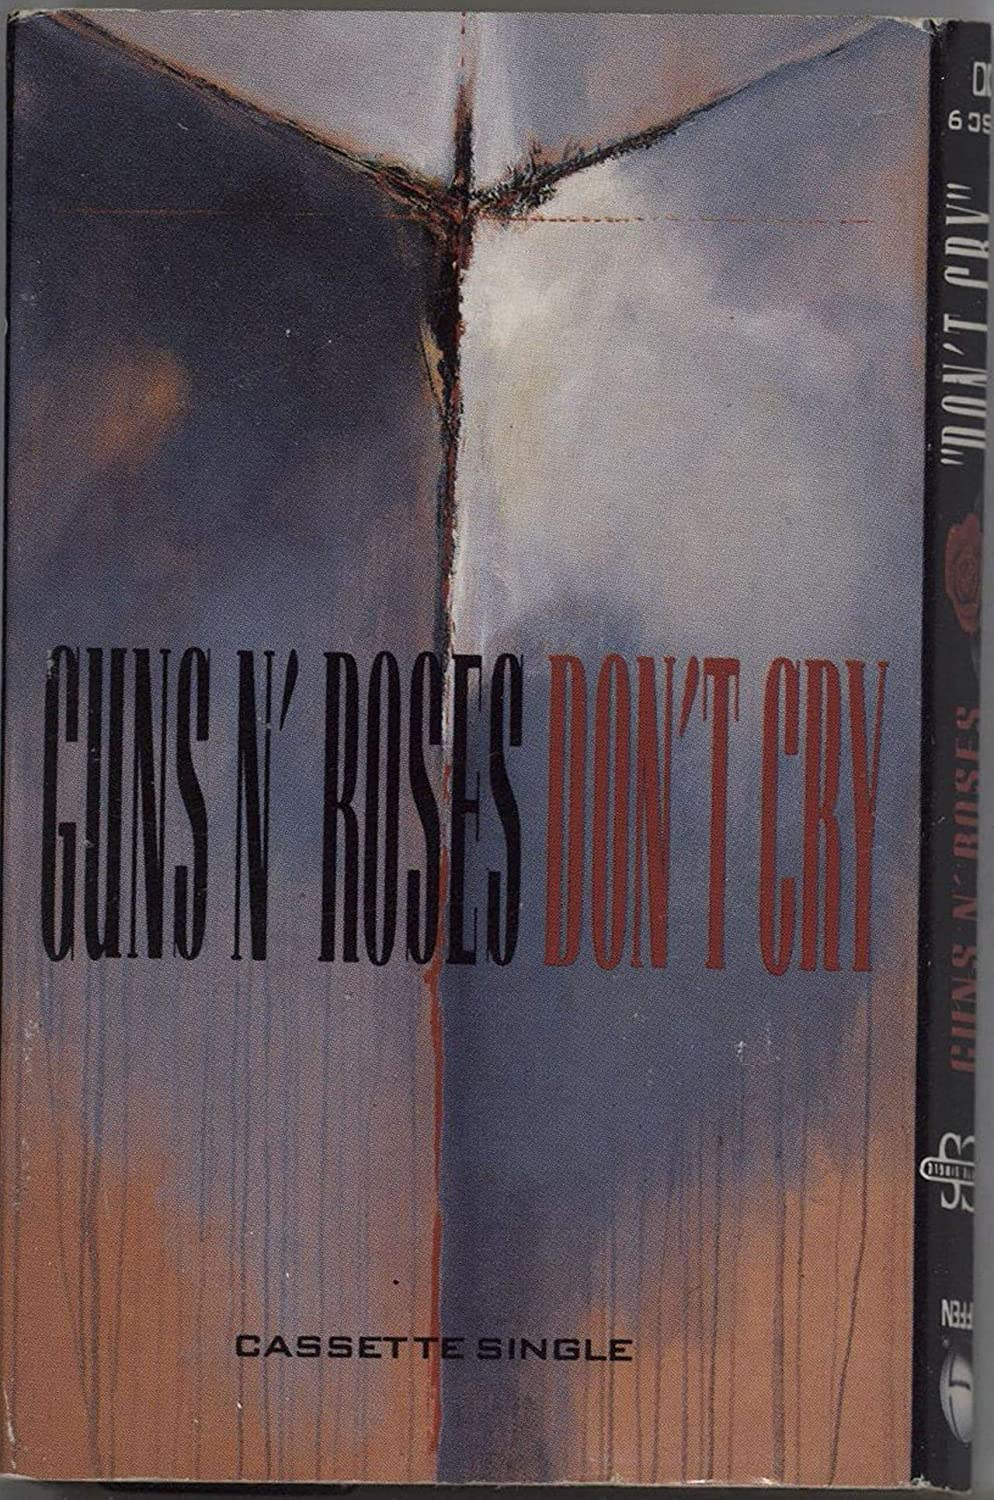 Guns N Roses - Don't Cry - Amazon.com Music